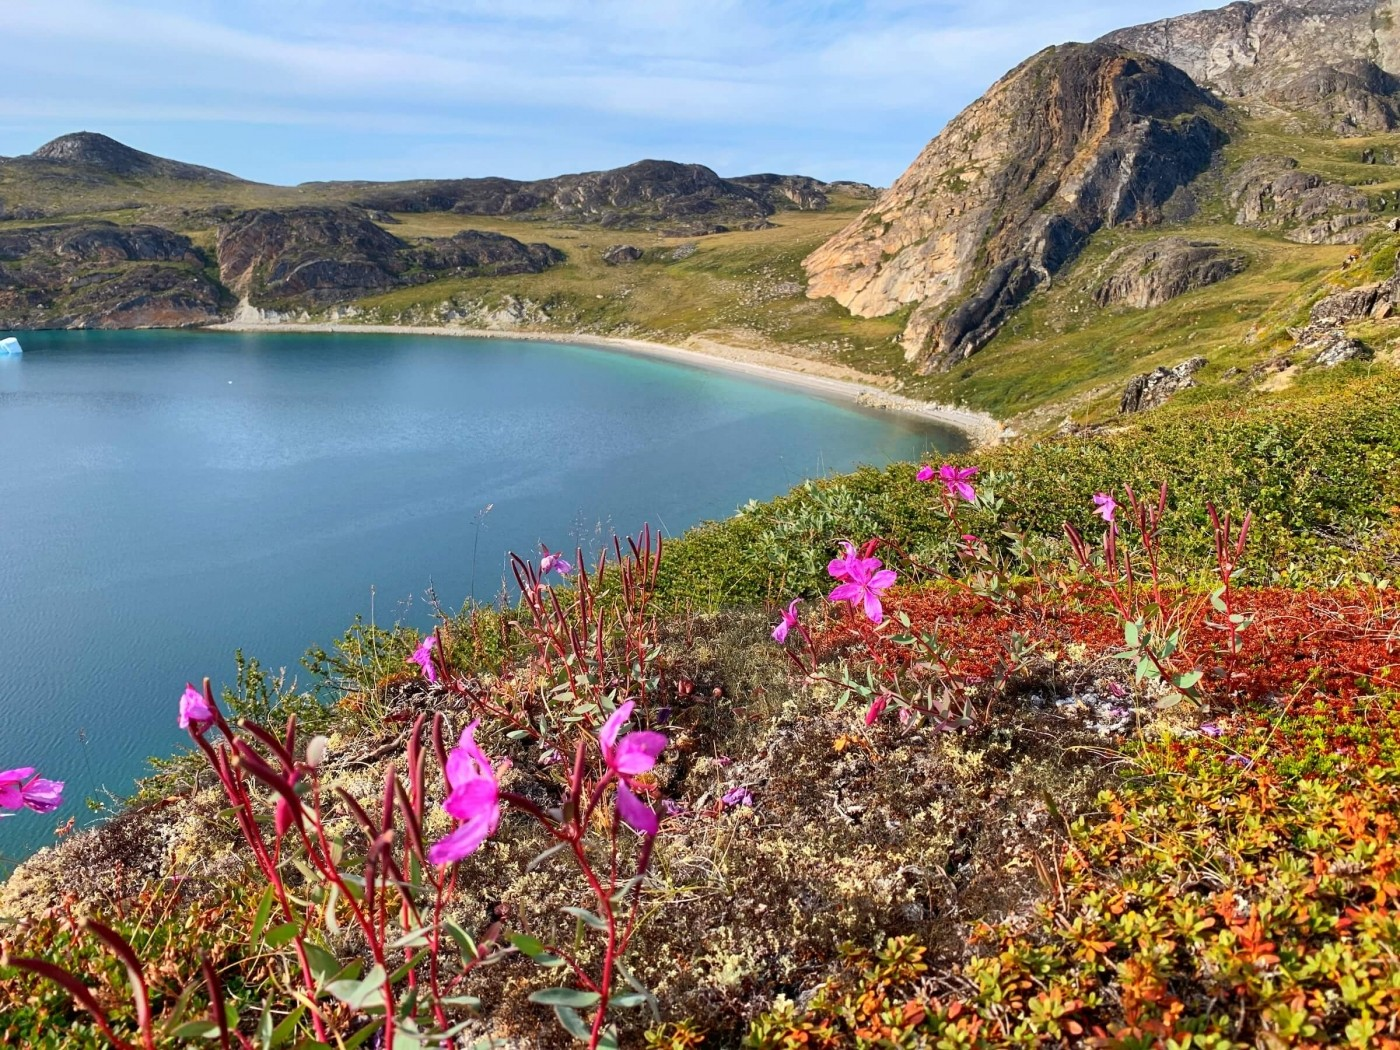 Blossoming flowers in Paradise bay. Photo by Espen Andersen, Visit Greenland